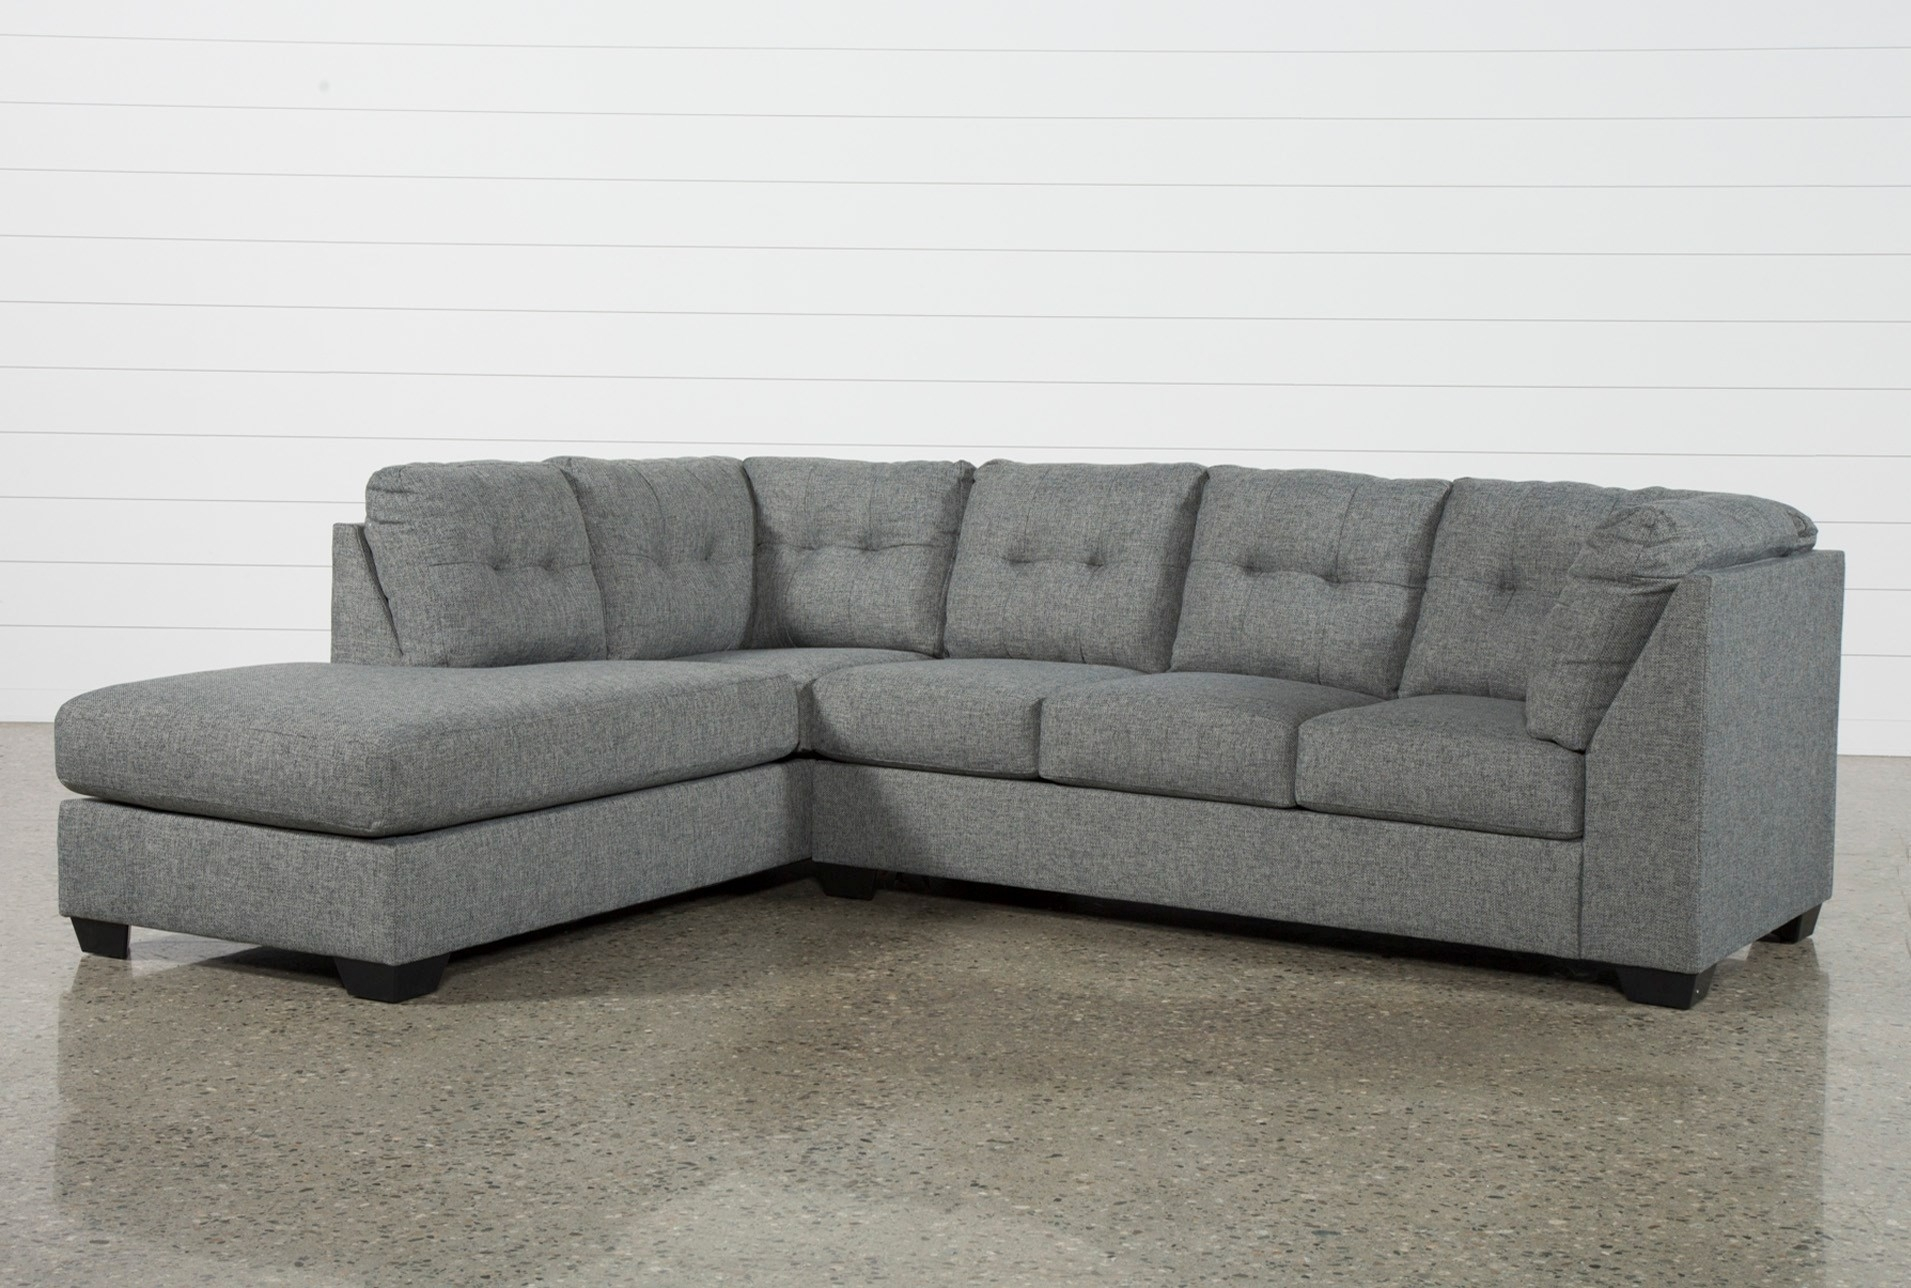 2 Piece Sectional Lucy Grey W Laf Chaise Living Spaces 225935 Fabric With Regard To Lucy Dark Grey 2 Piece Sectionals With Raf Chaise (Image 2 of 25)